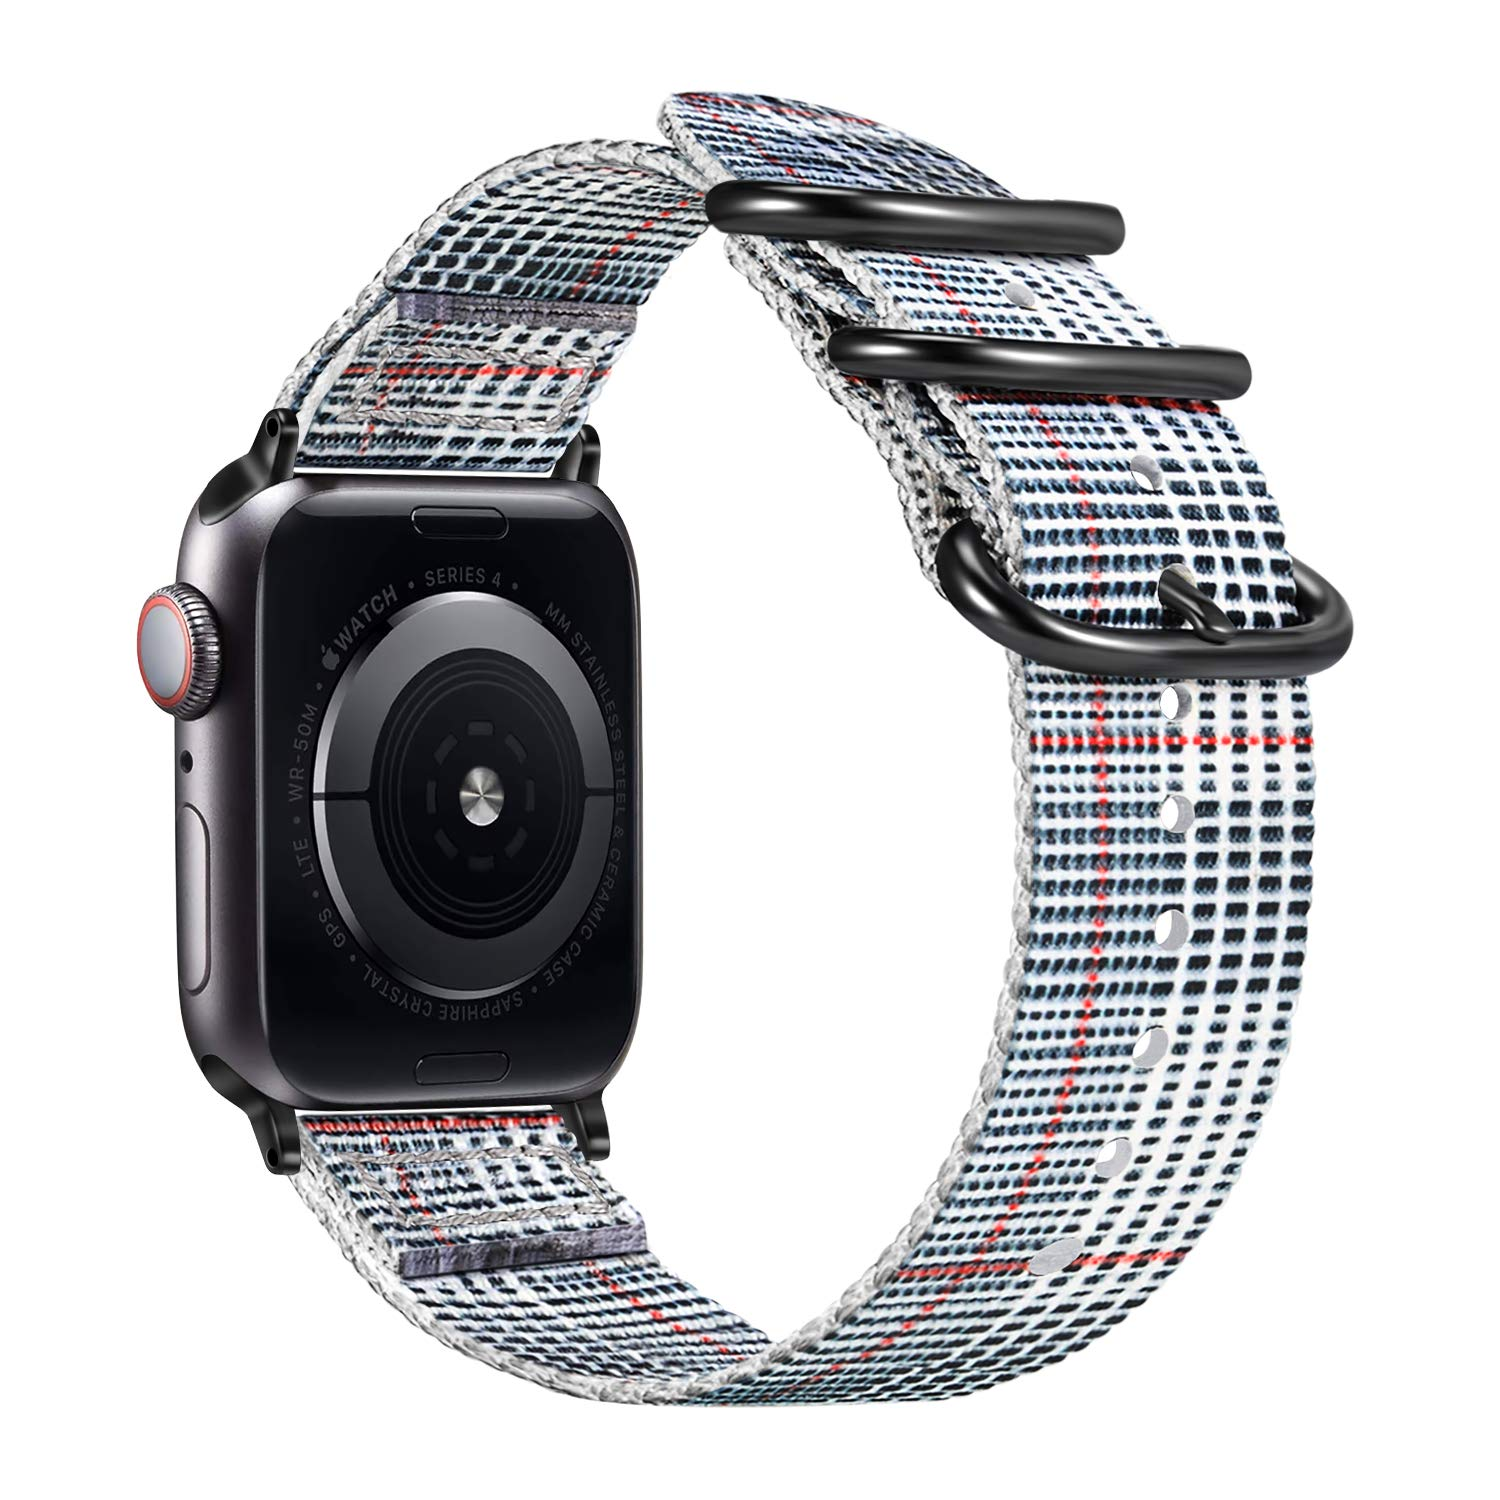 Malla Nylon para Apple Watch (42/44mm) FINTIE [7VXKK9YH]